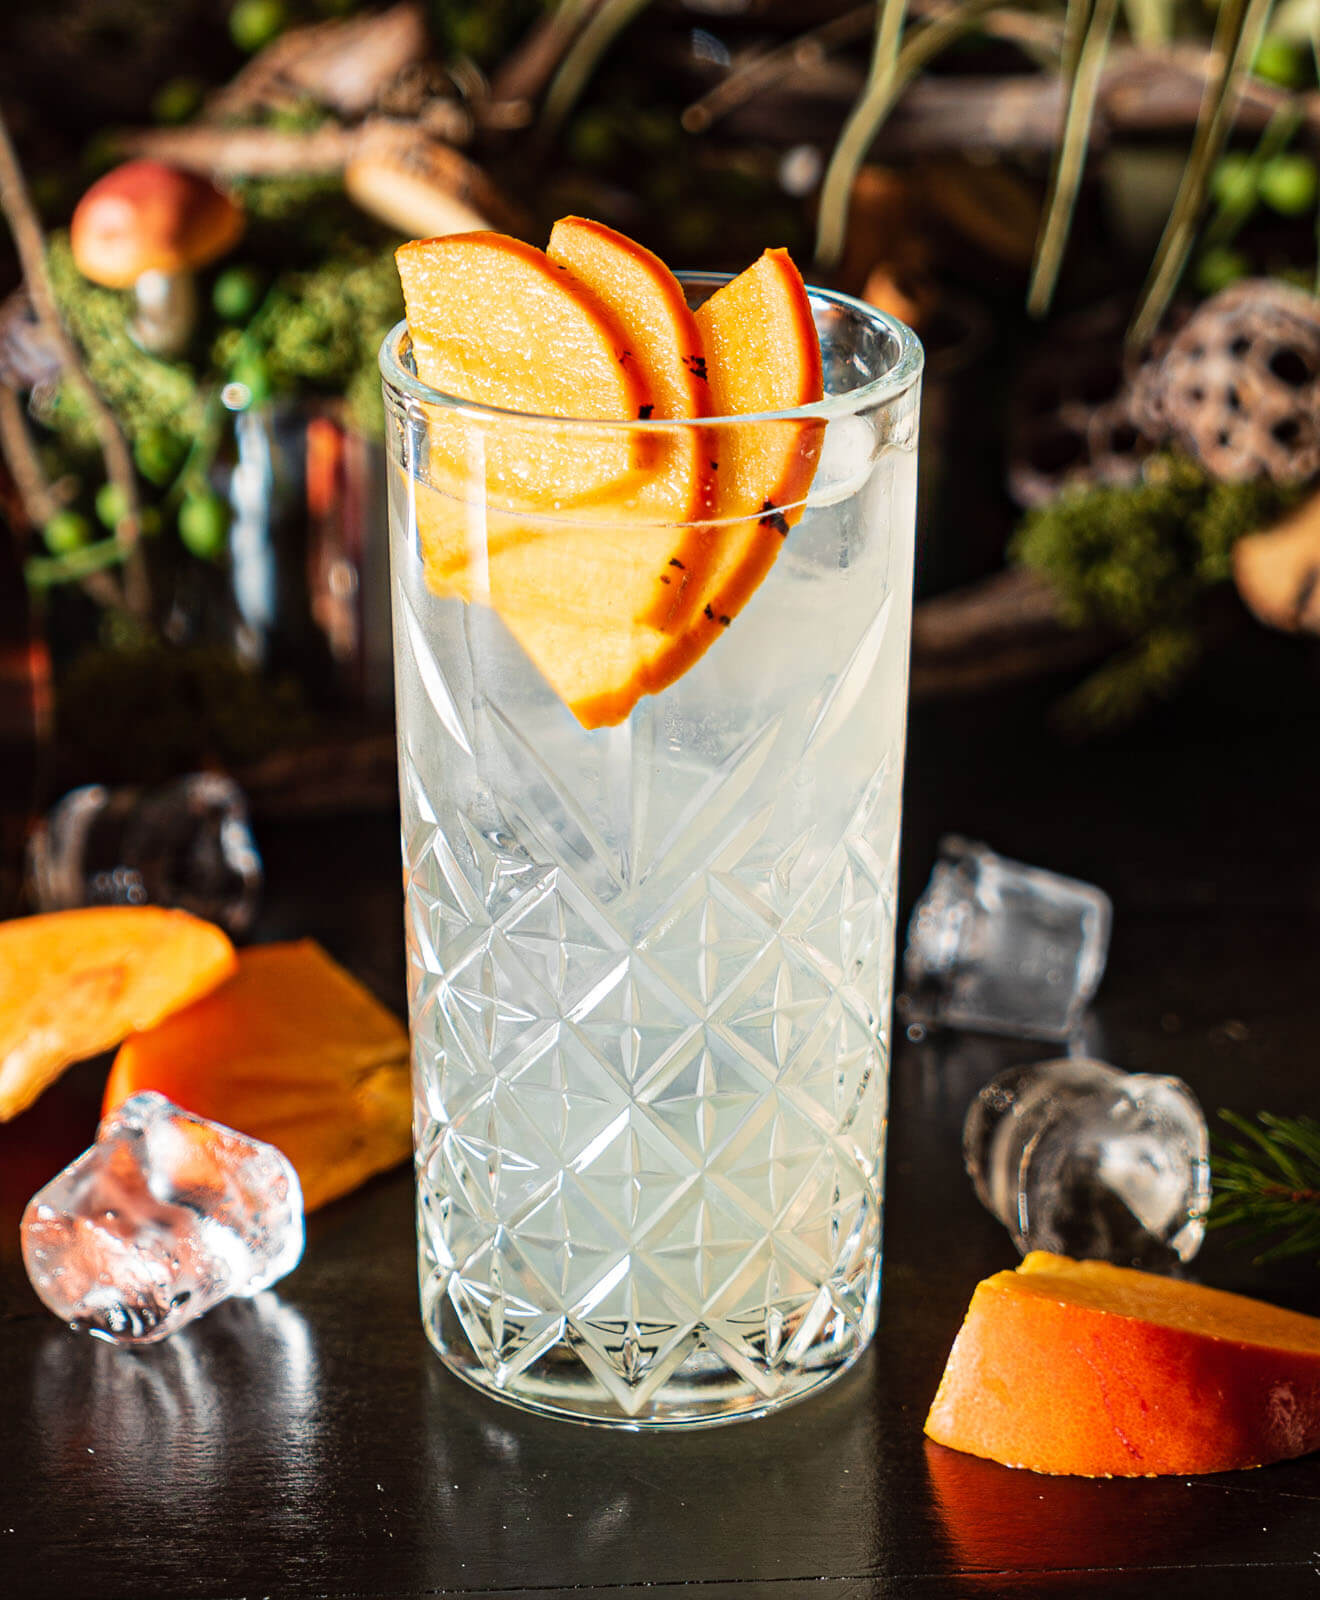 Cocktail with Persimmon garnish